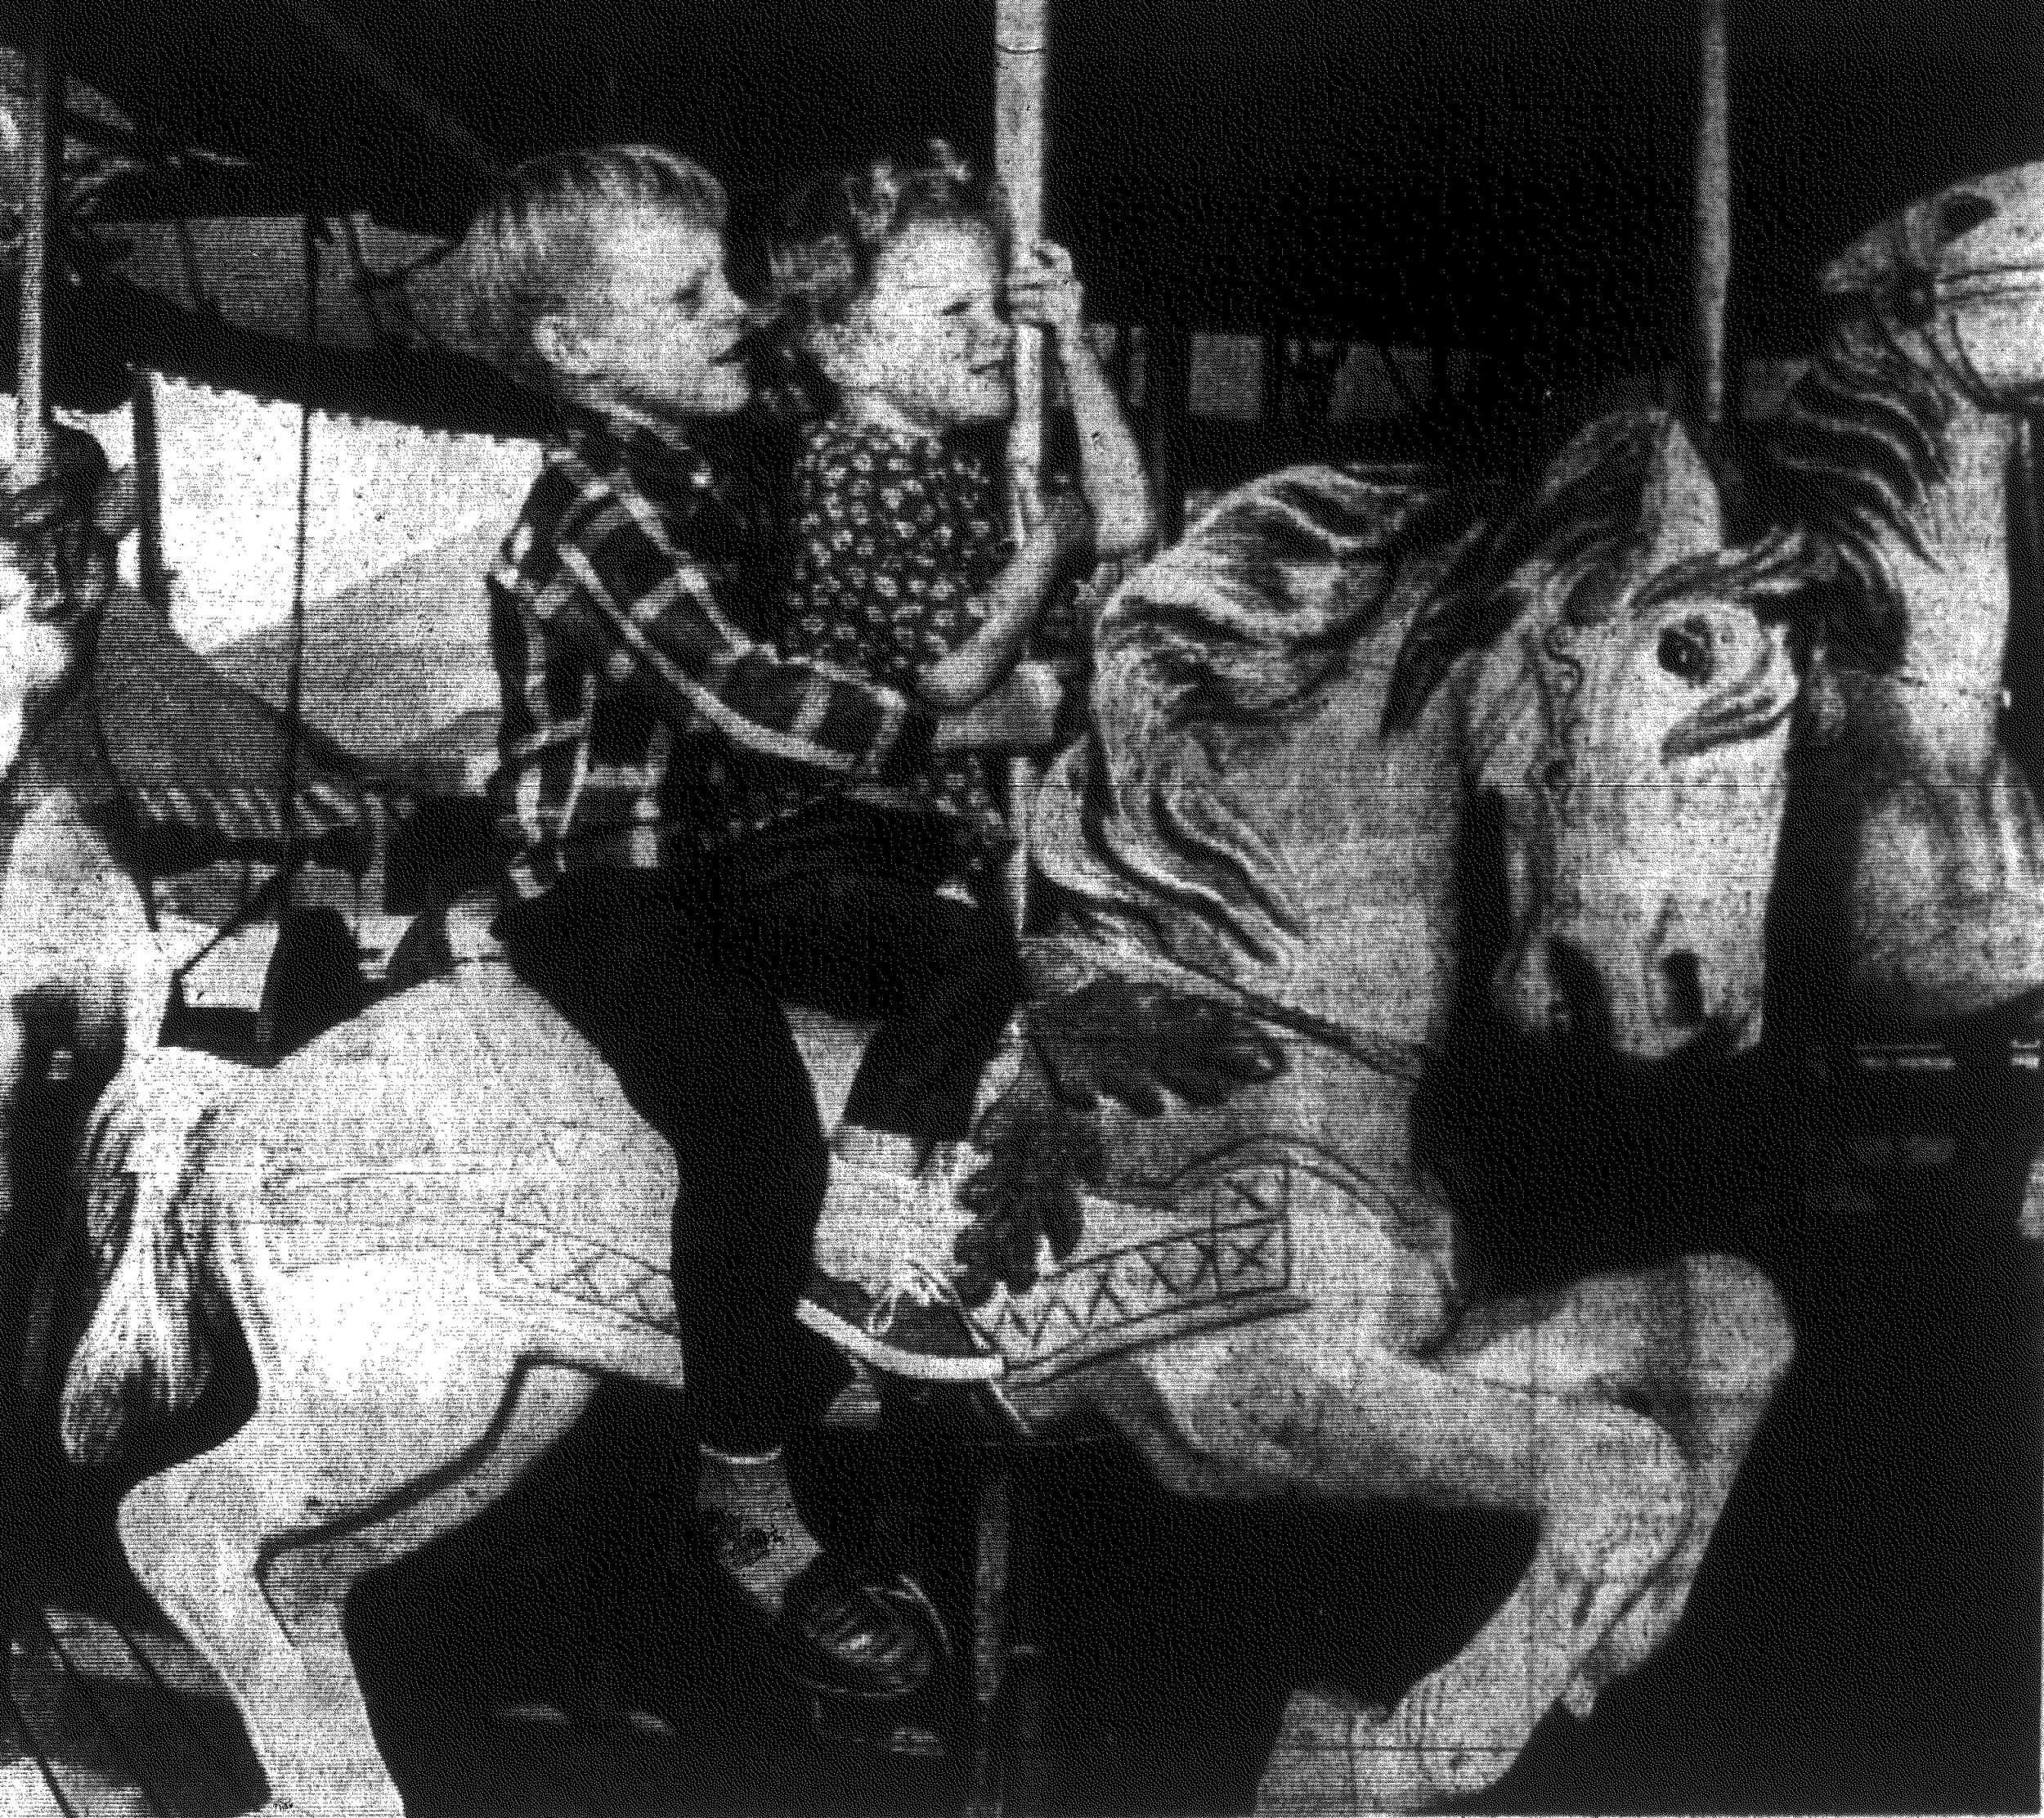 1967 -- Delgar Fowler, 6, and his sister Susan, 3, watch the world go by as they enjoy the merry-go-round at the Sumter County Fair. They were two of hundreds of youngsters enjoying the annual event presented by American Legion Post 15. Their parents are Mr. and Mrs. Nick Fowler.